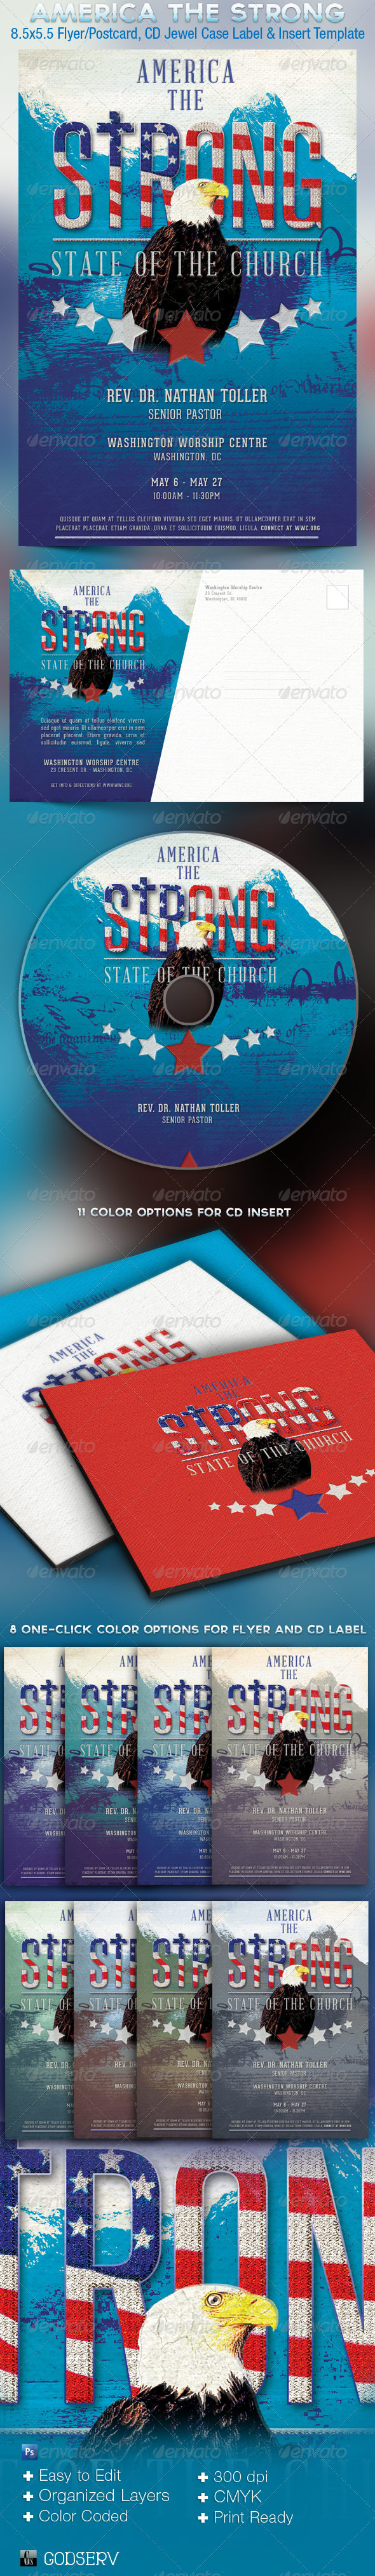 America The Strong Church Flyer, Postcard and CD Template - Church Flyers